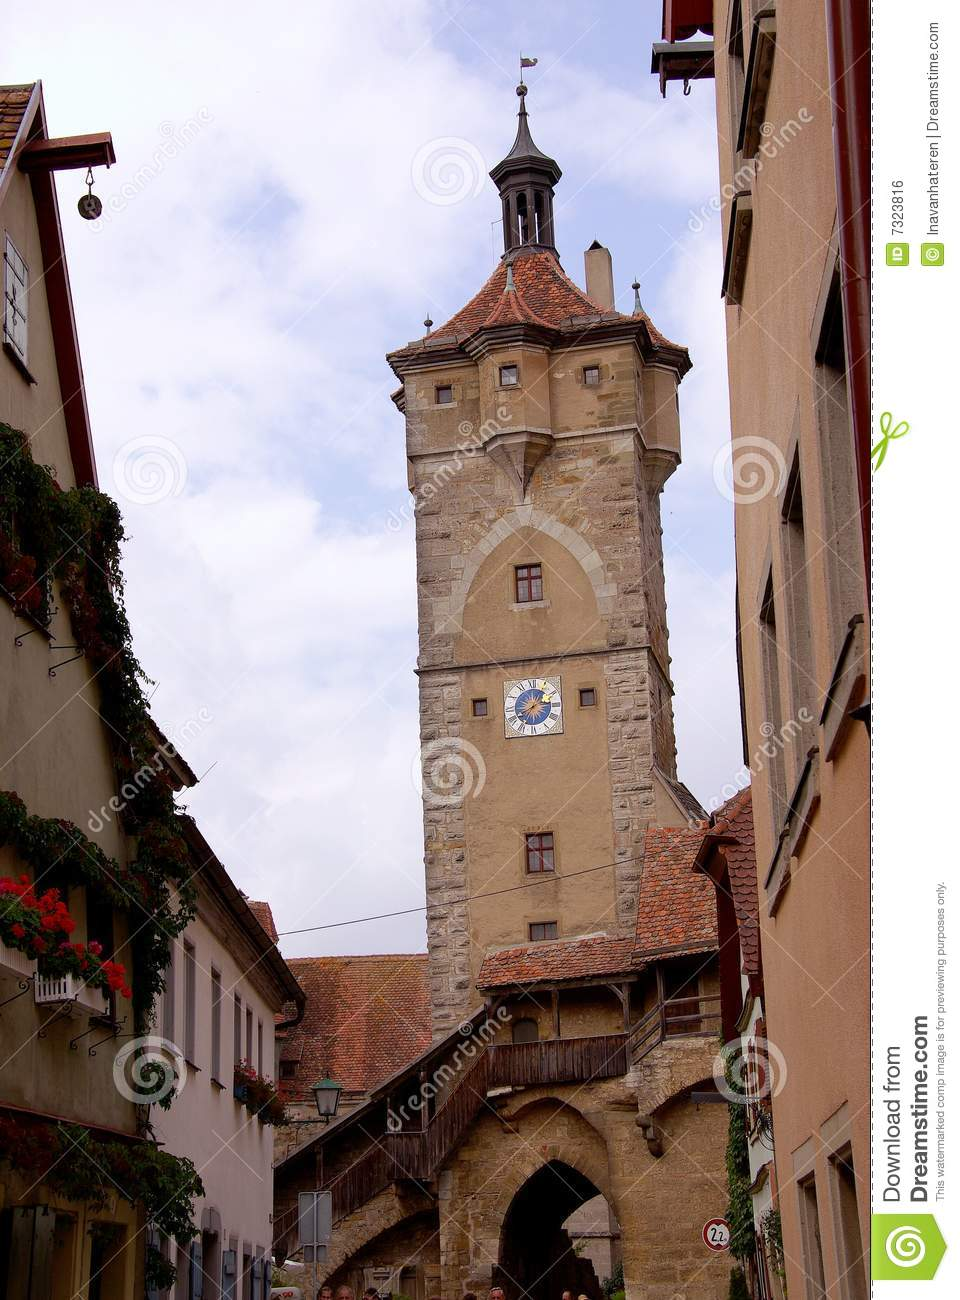 Rothenburg, Germania